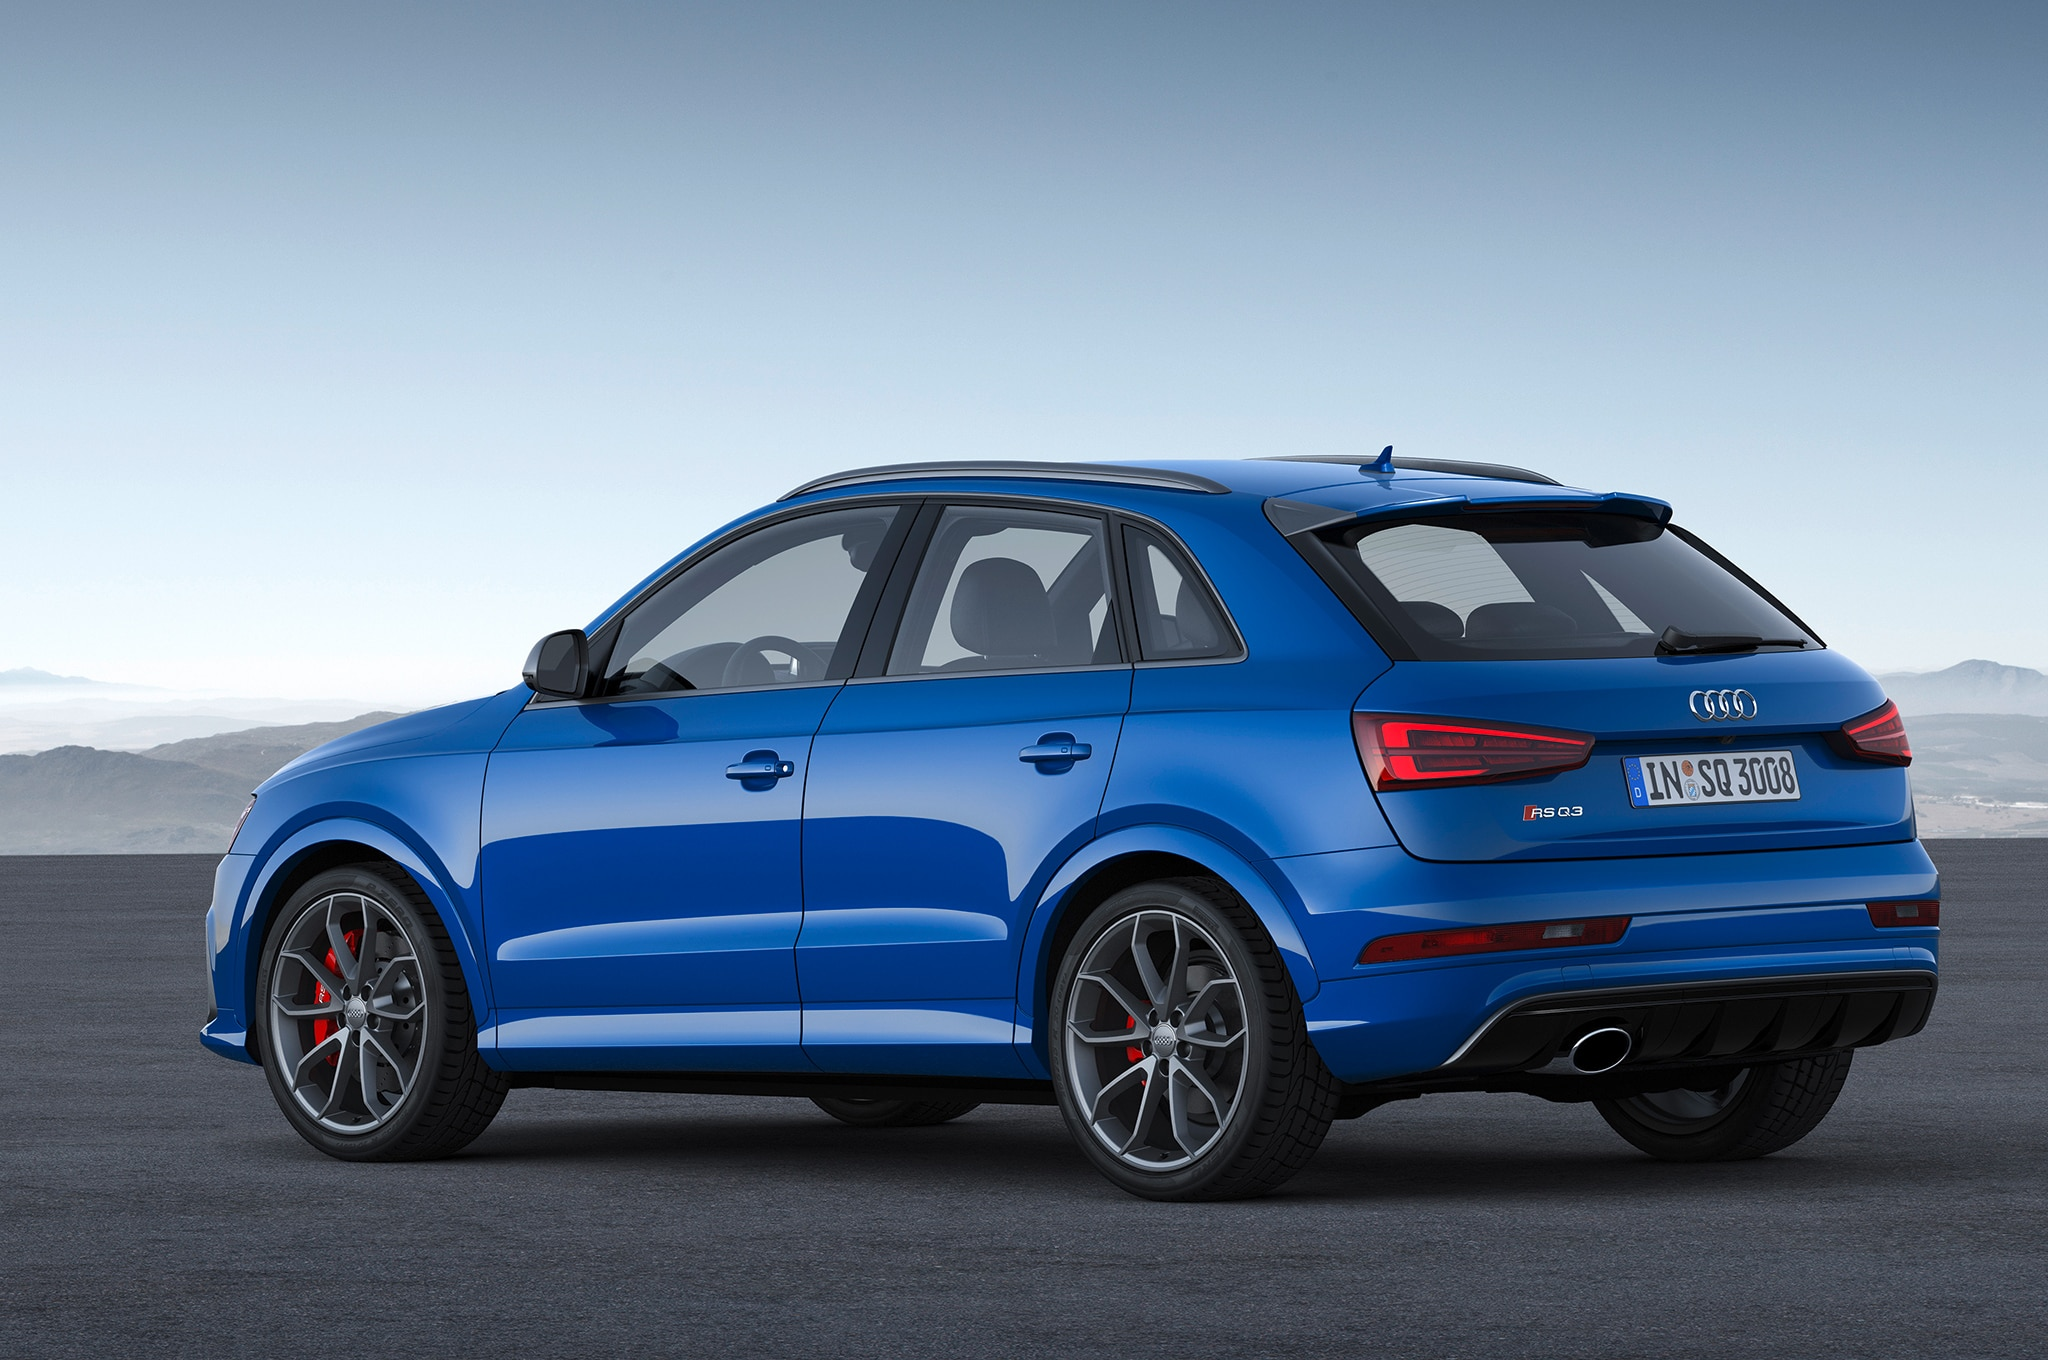 audi rs q3 performance boosts power to 362 hp top speed to 168 mph. Black Bedroom Furniture Sets. Home Design Ideas